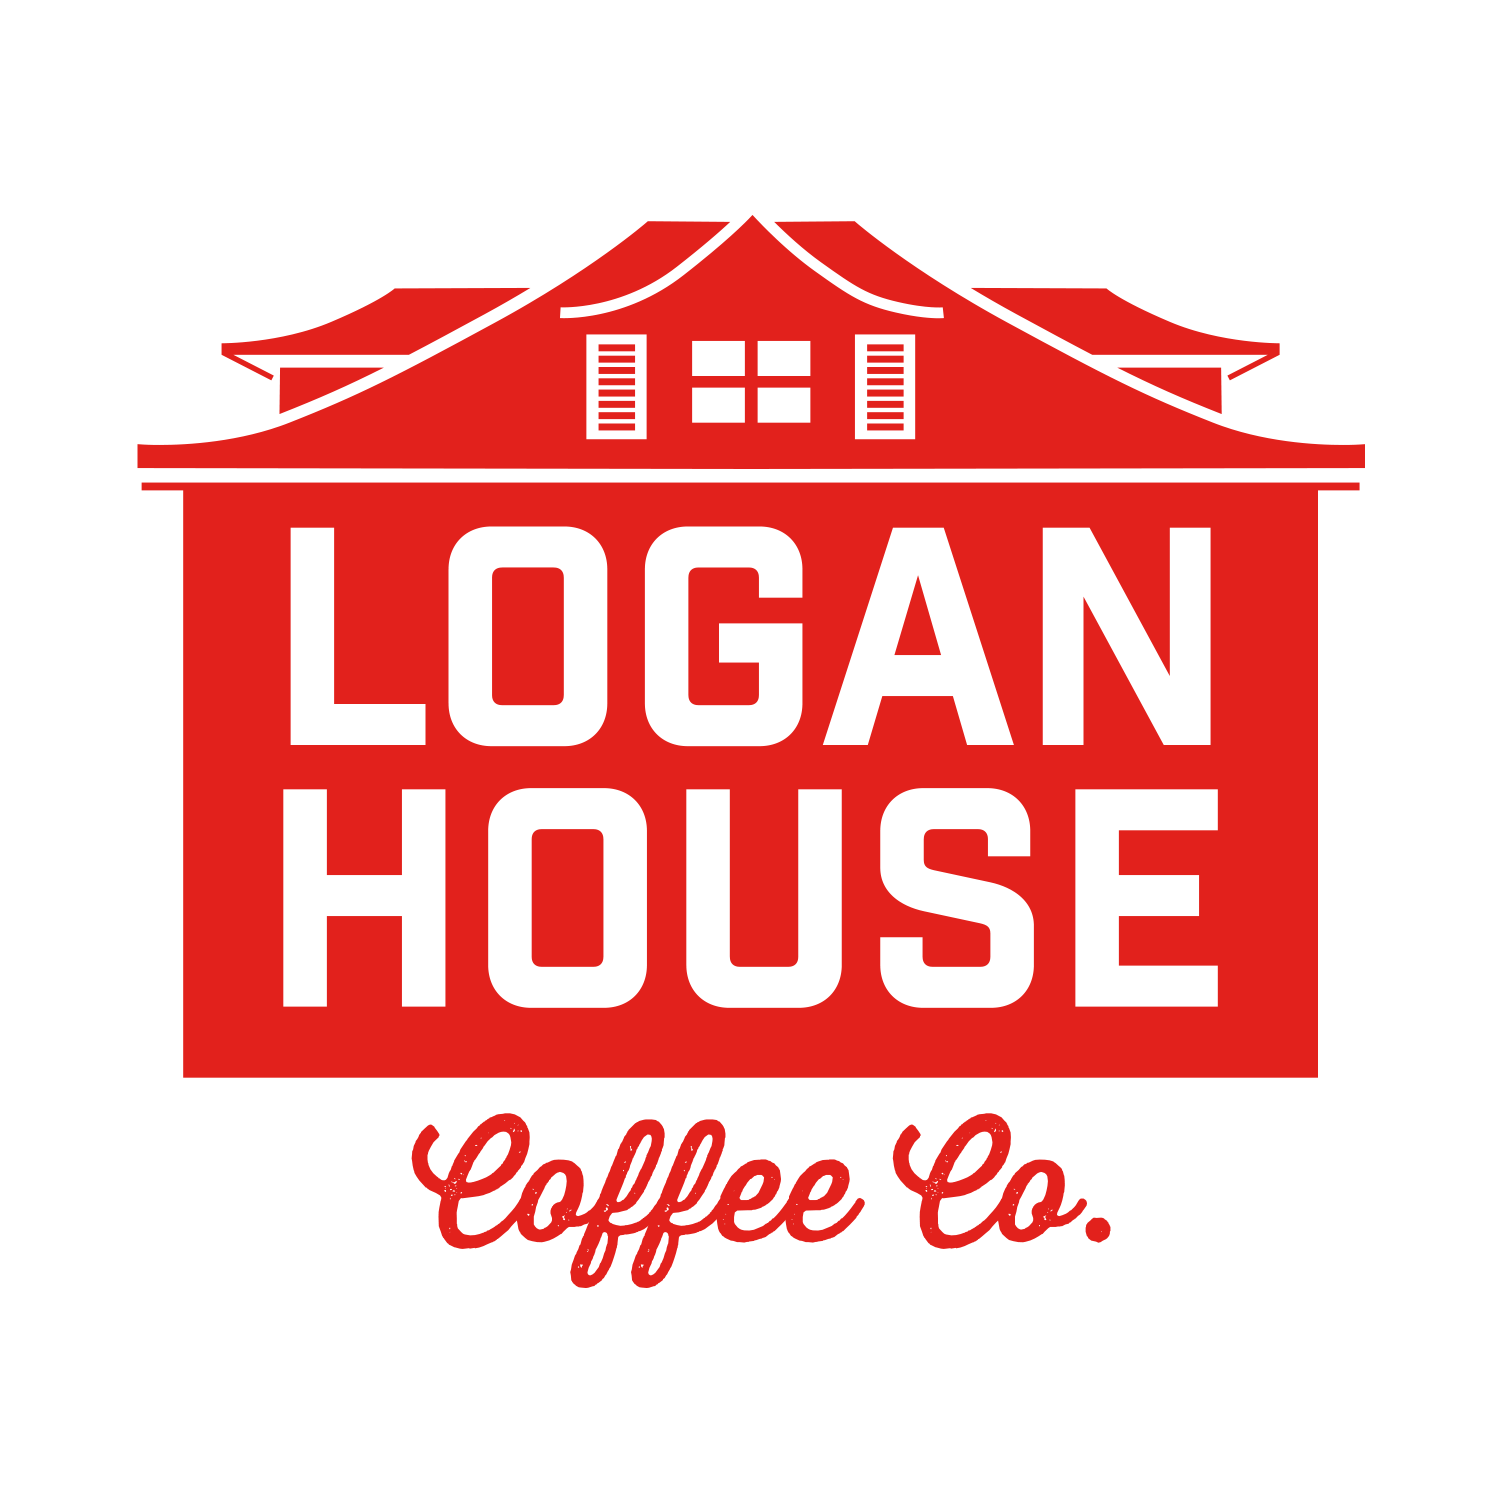 Logan House Coffee Co. Logo Design